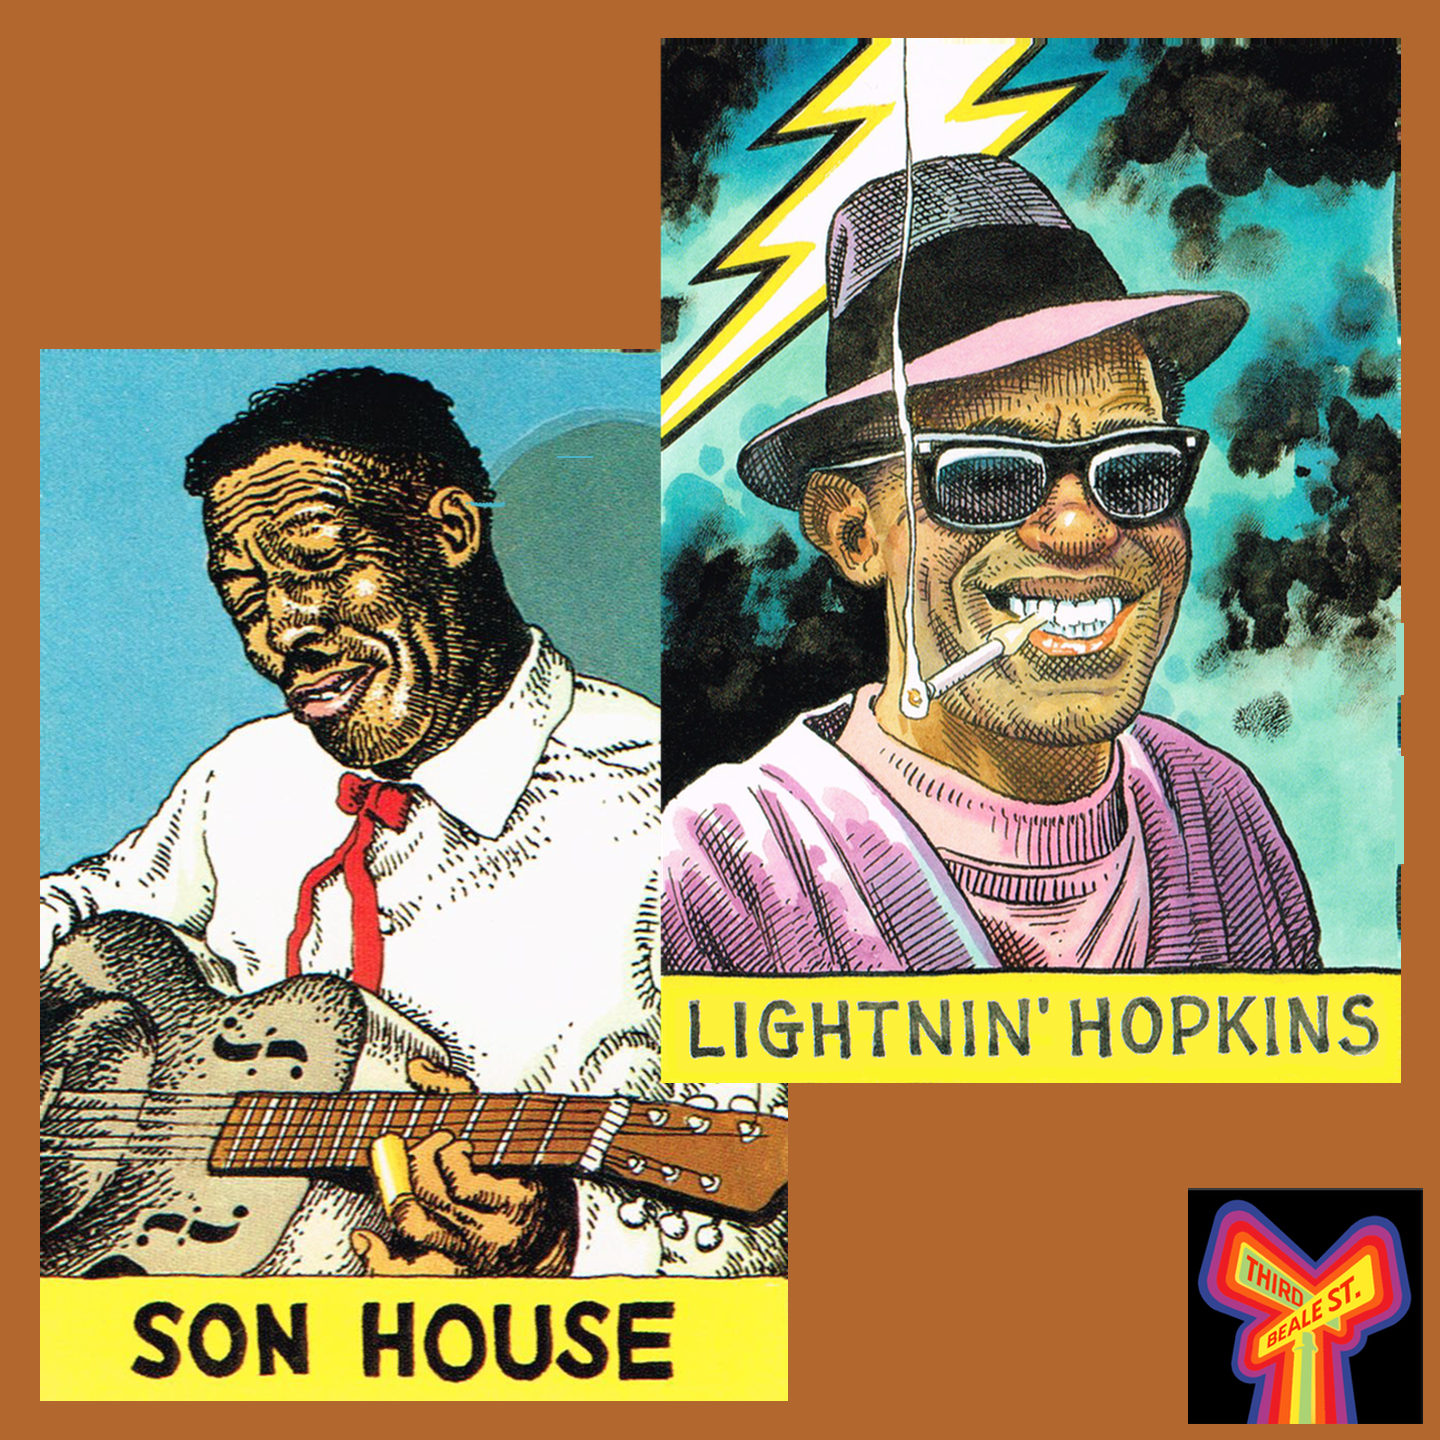 Caption: Illustration of Son House by R. Crumb; Lightnin' Hopkins by William Stout.